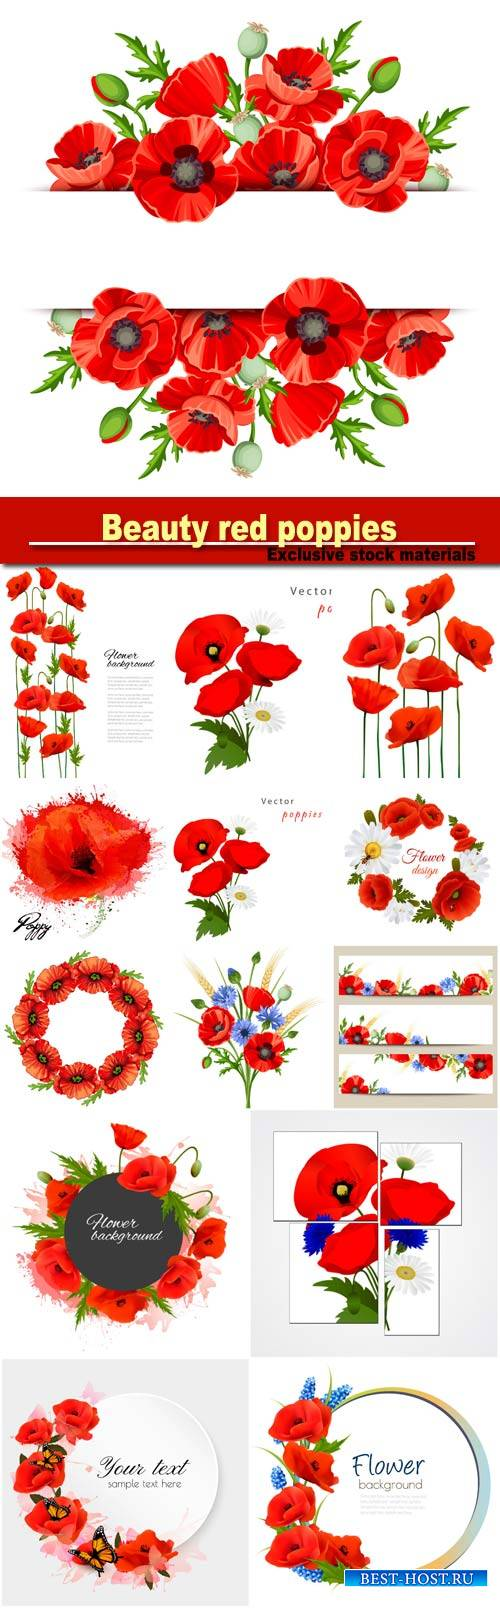 Beautiful background with beauty red poppies, vector floral